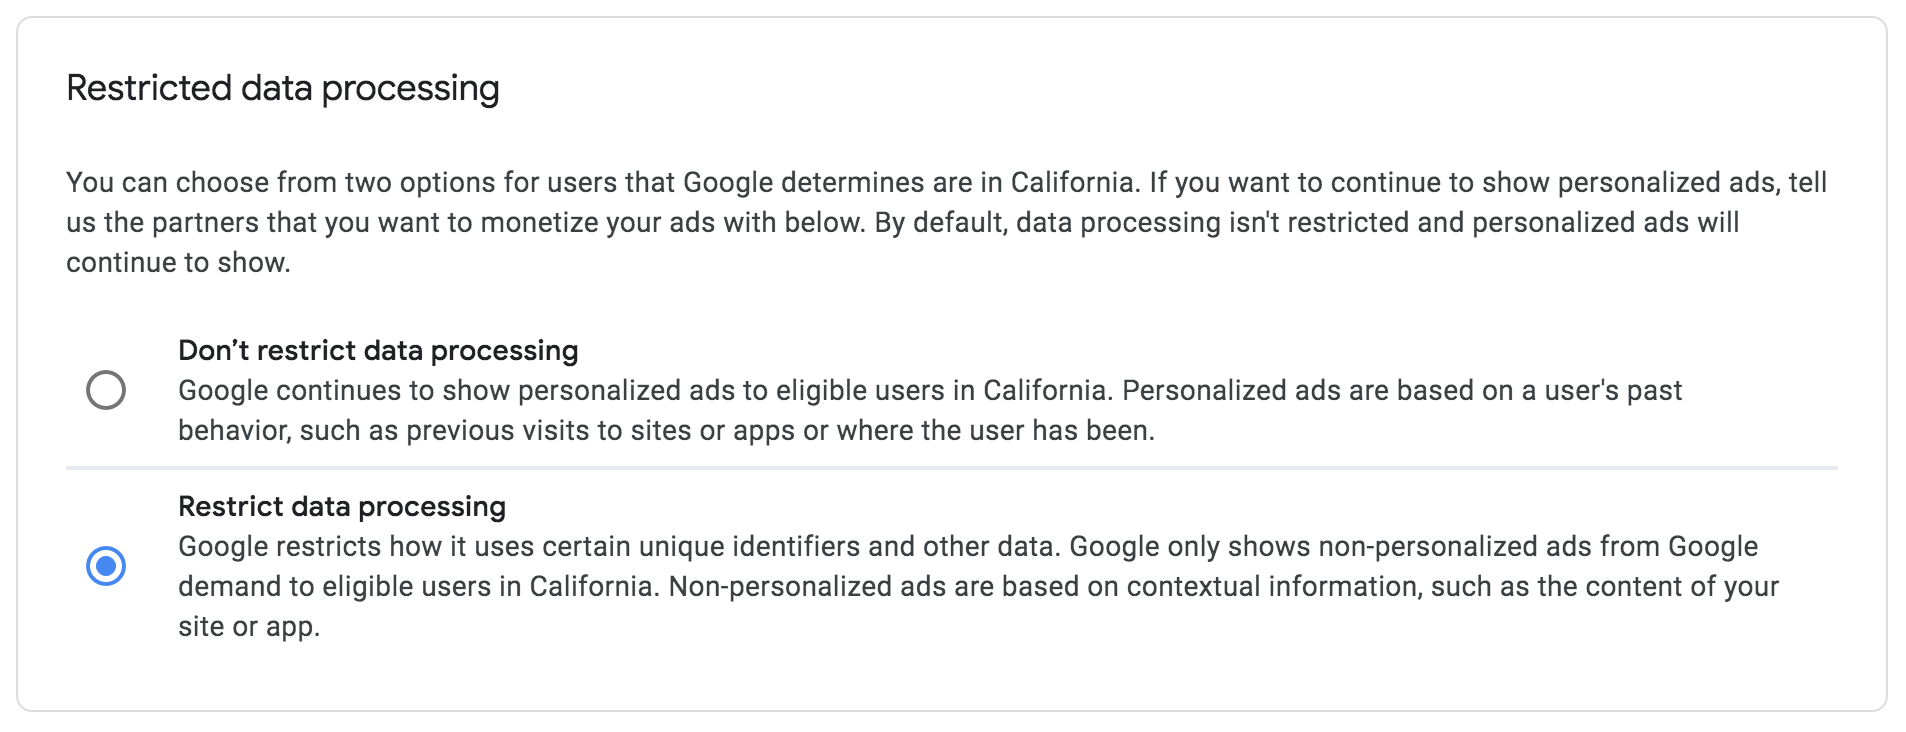 Restricted data processing settings in Google AdSense to comply with the CCPA